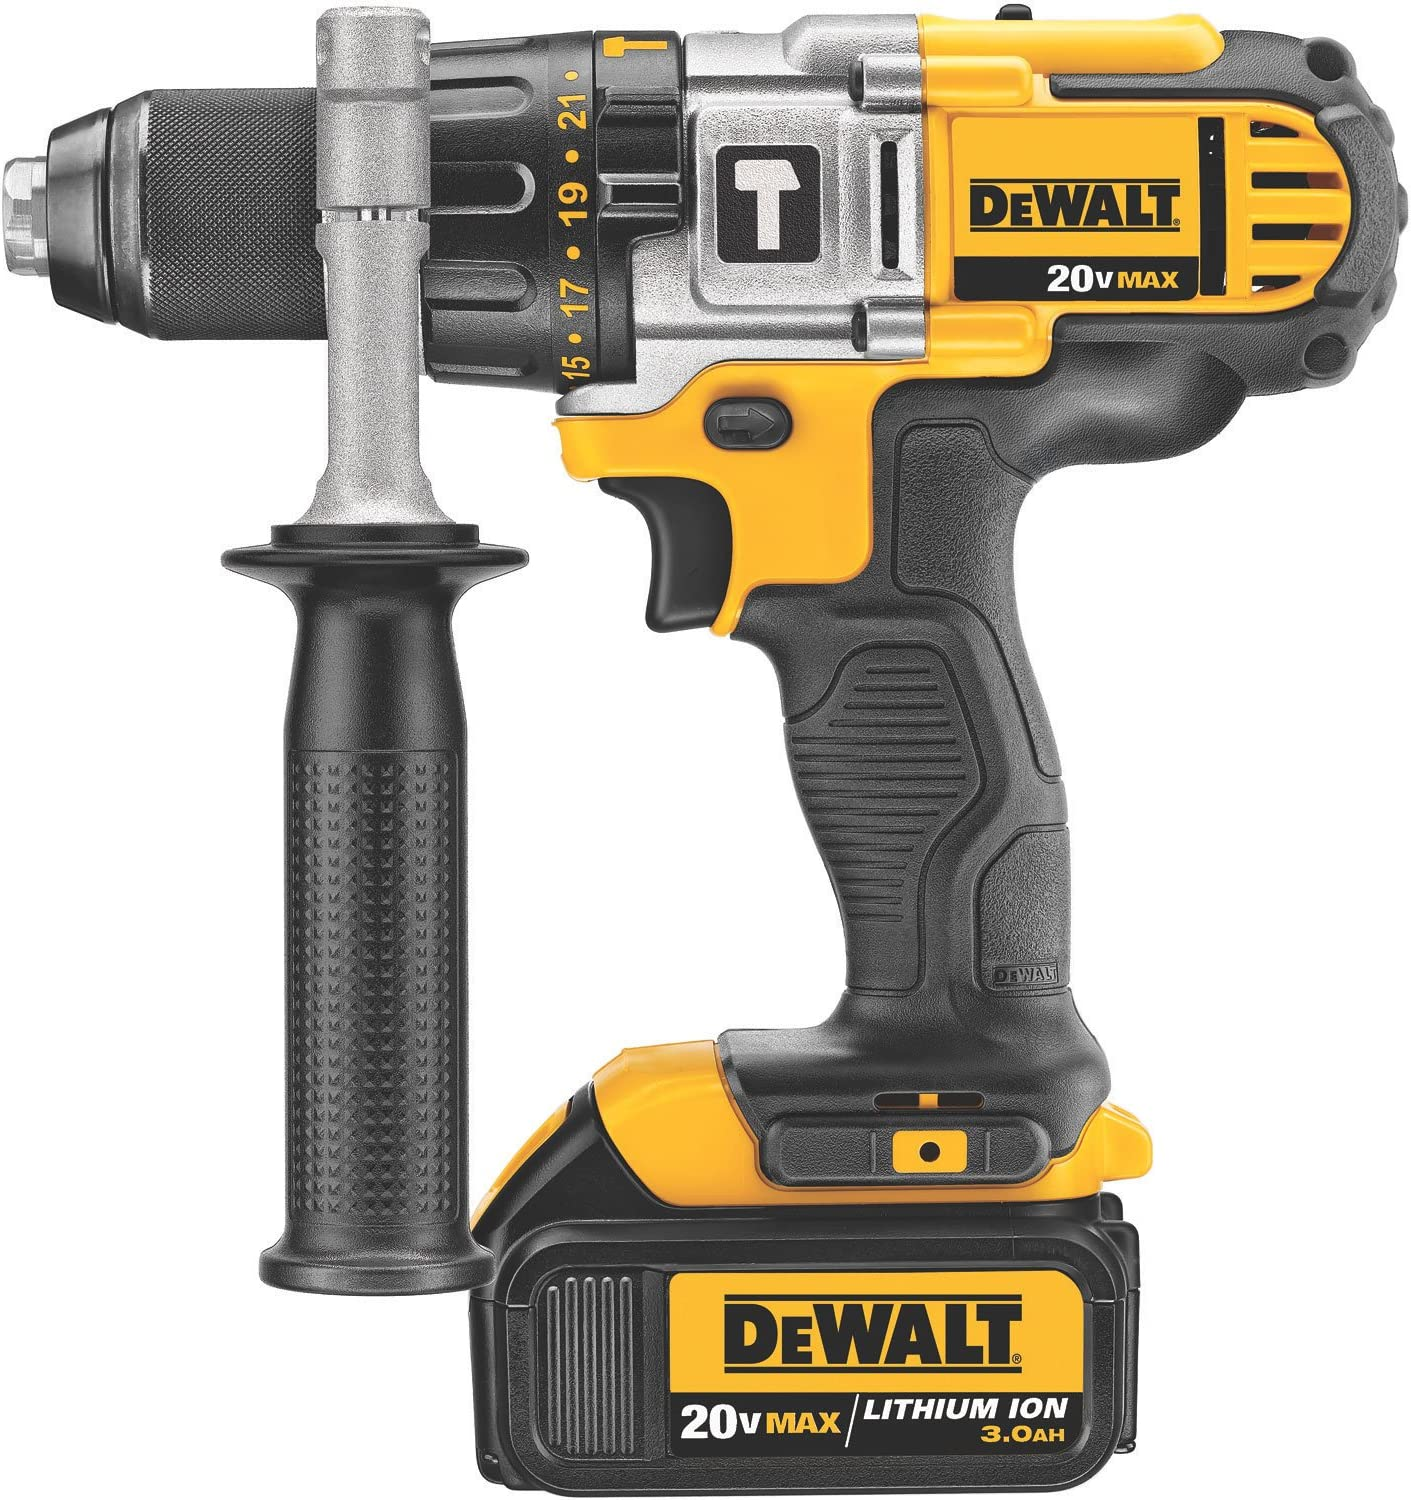 DEWALT 20V MAX Impact Driver and Hammer Drill